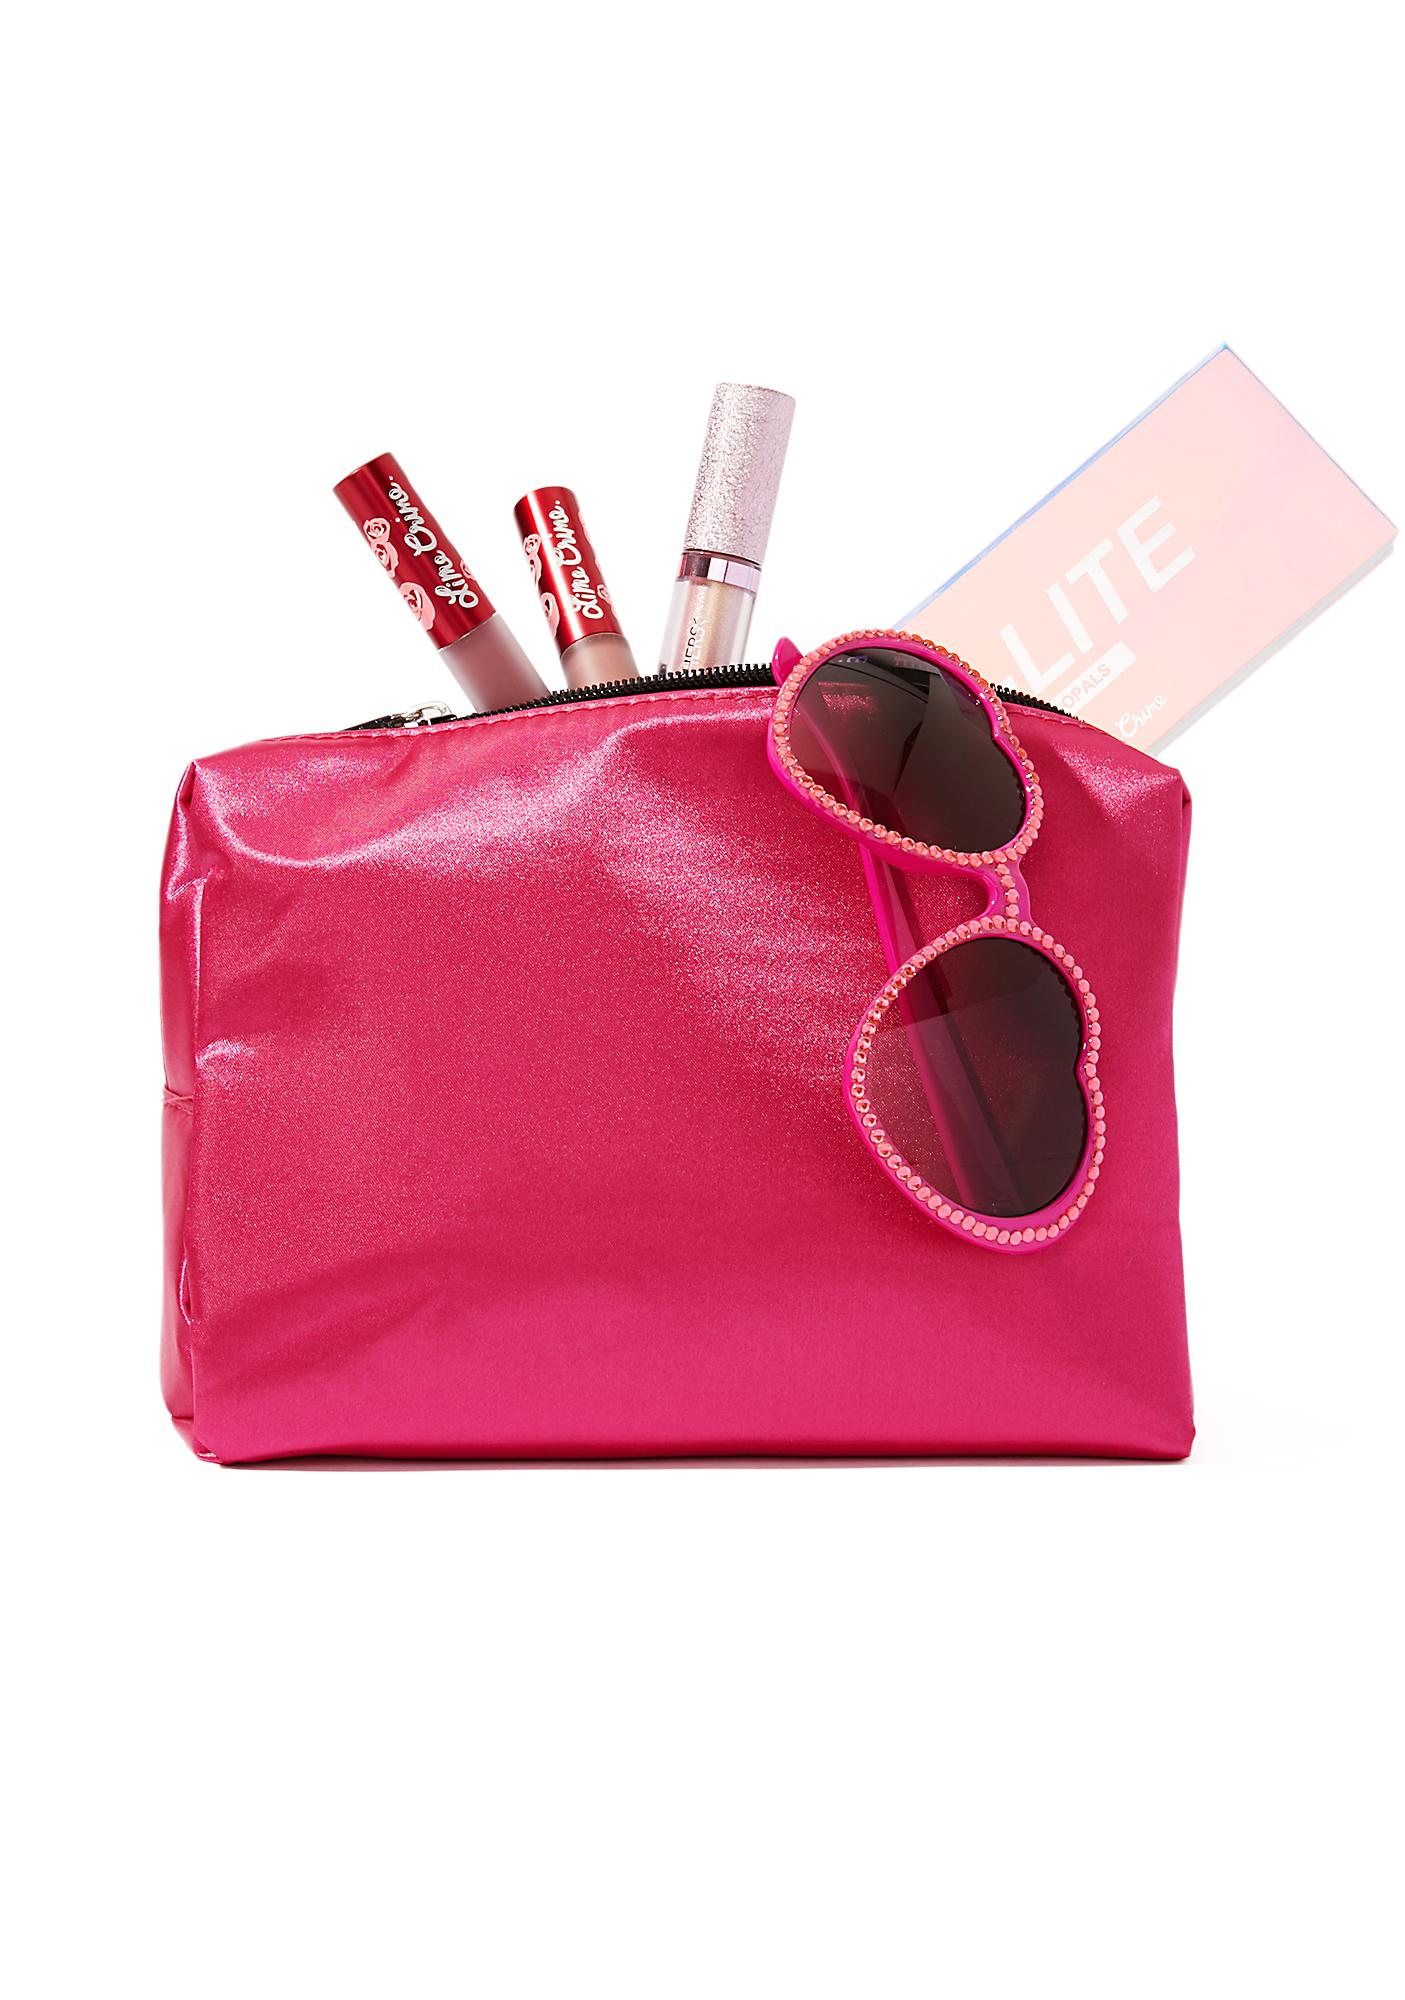 Caboodles Pixie Perfect Large Makeup Bag